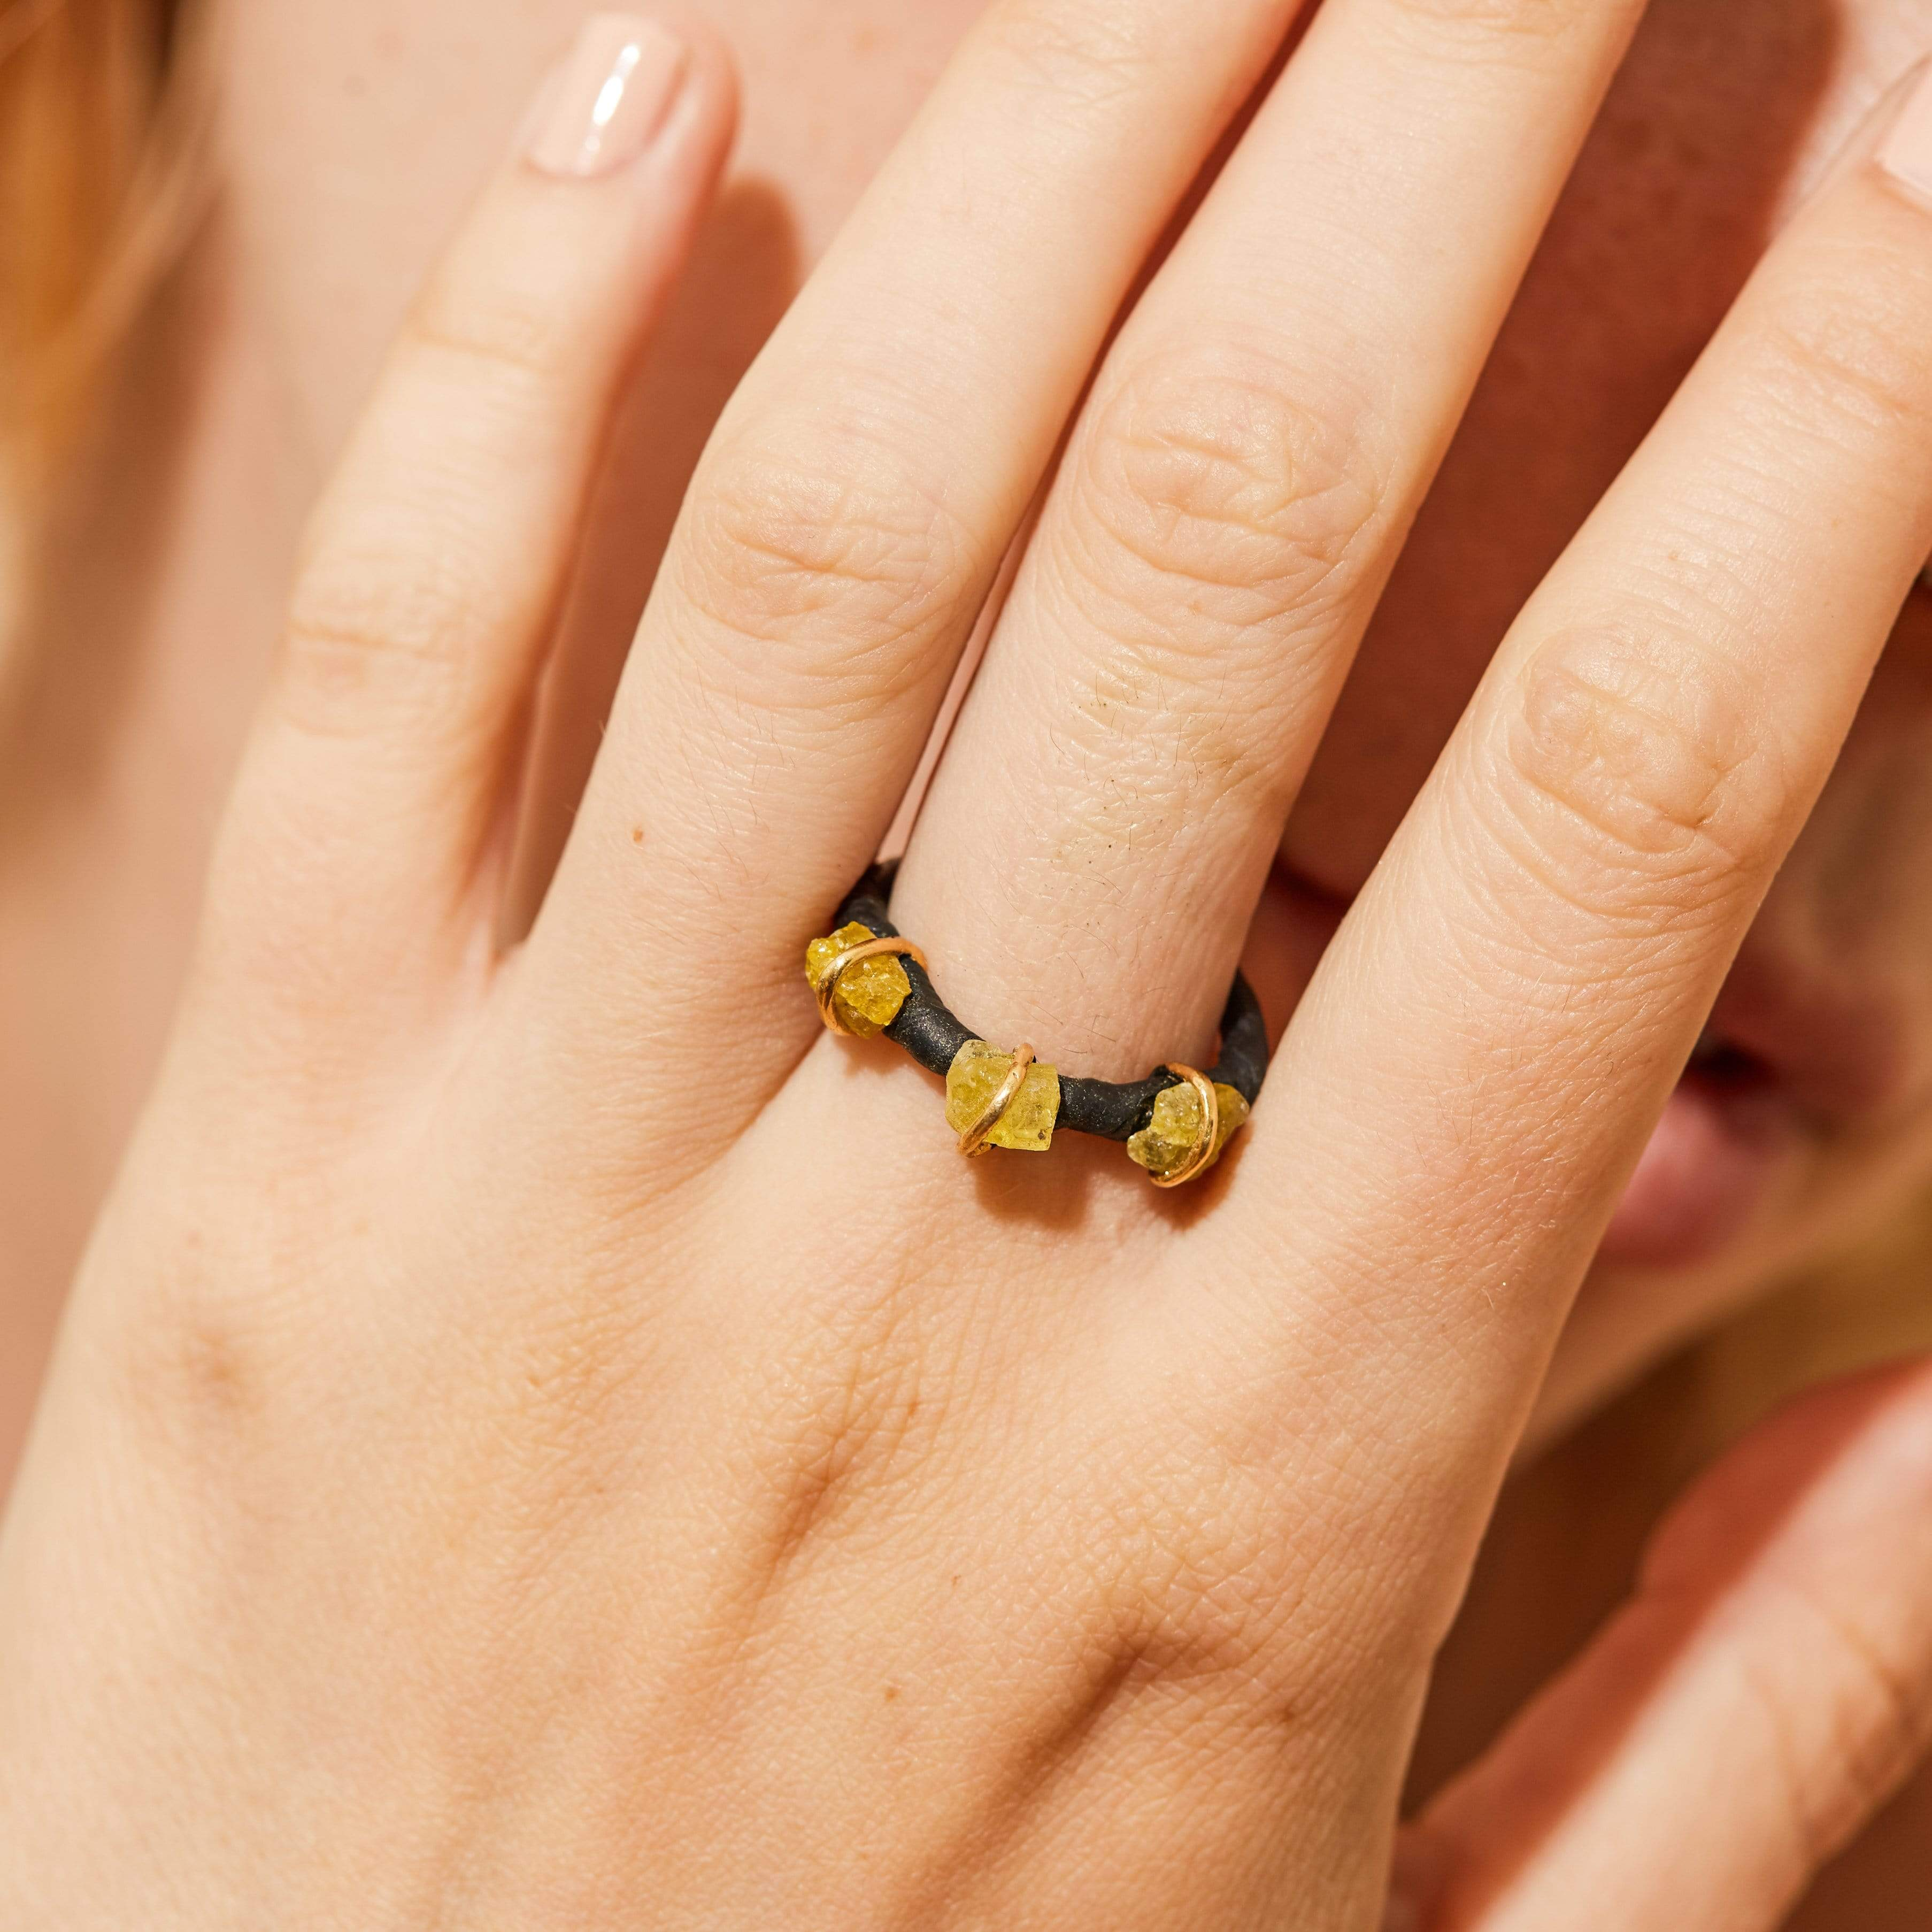 Circe Amber Ring, Anthracite, black, Chrysoberyl, Gold, Handmade, StoneColor:Yellow, Style:Delicate, Type:BlackAnthracite, Type:StoneCandyDelicate Ring